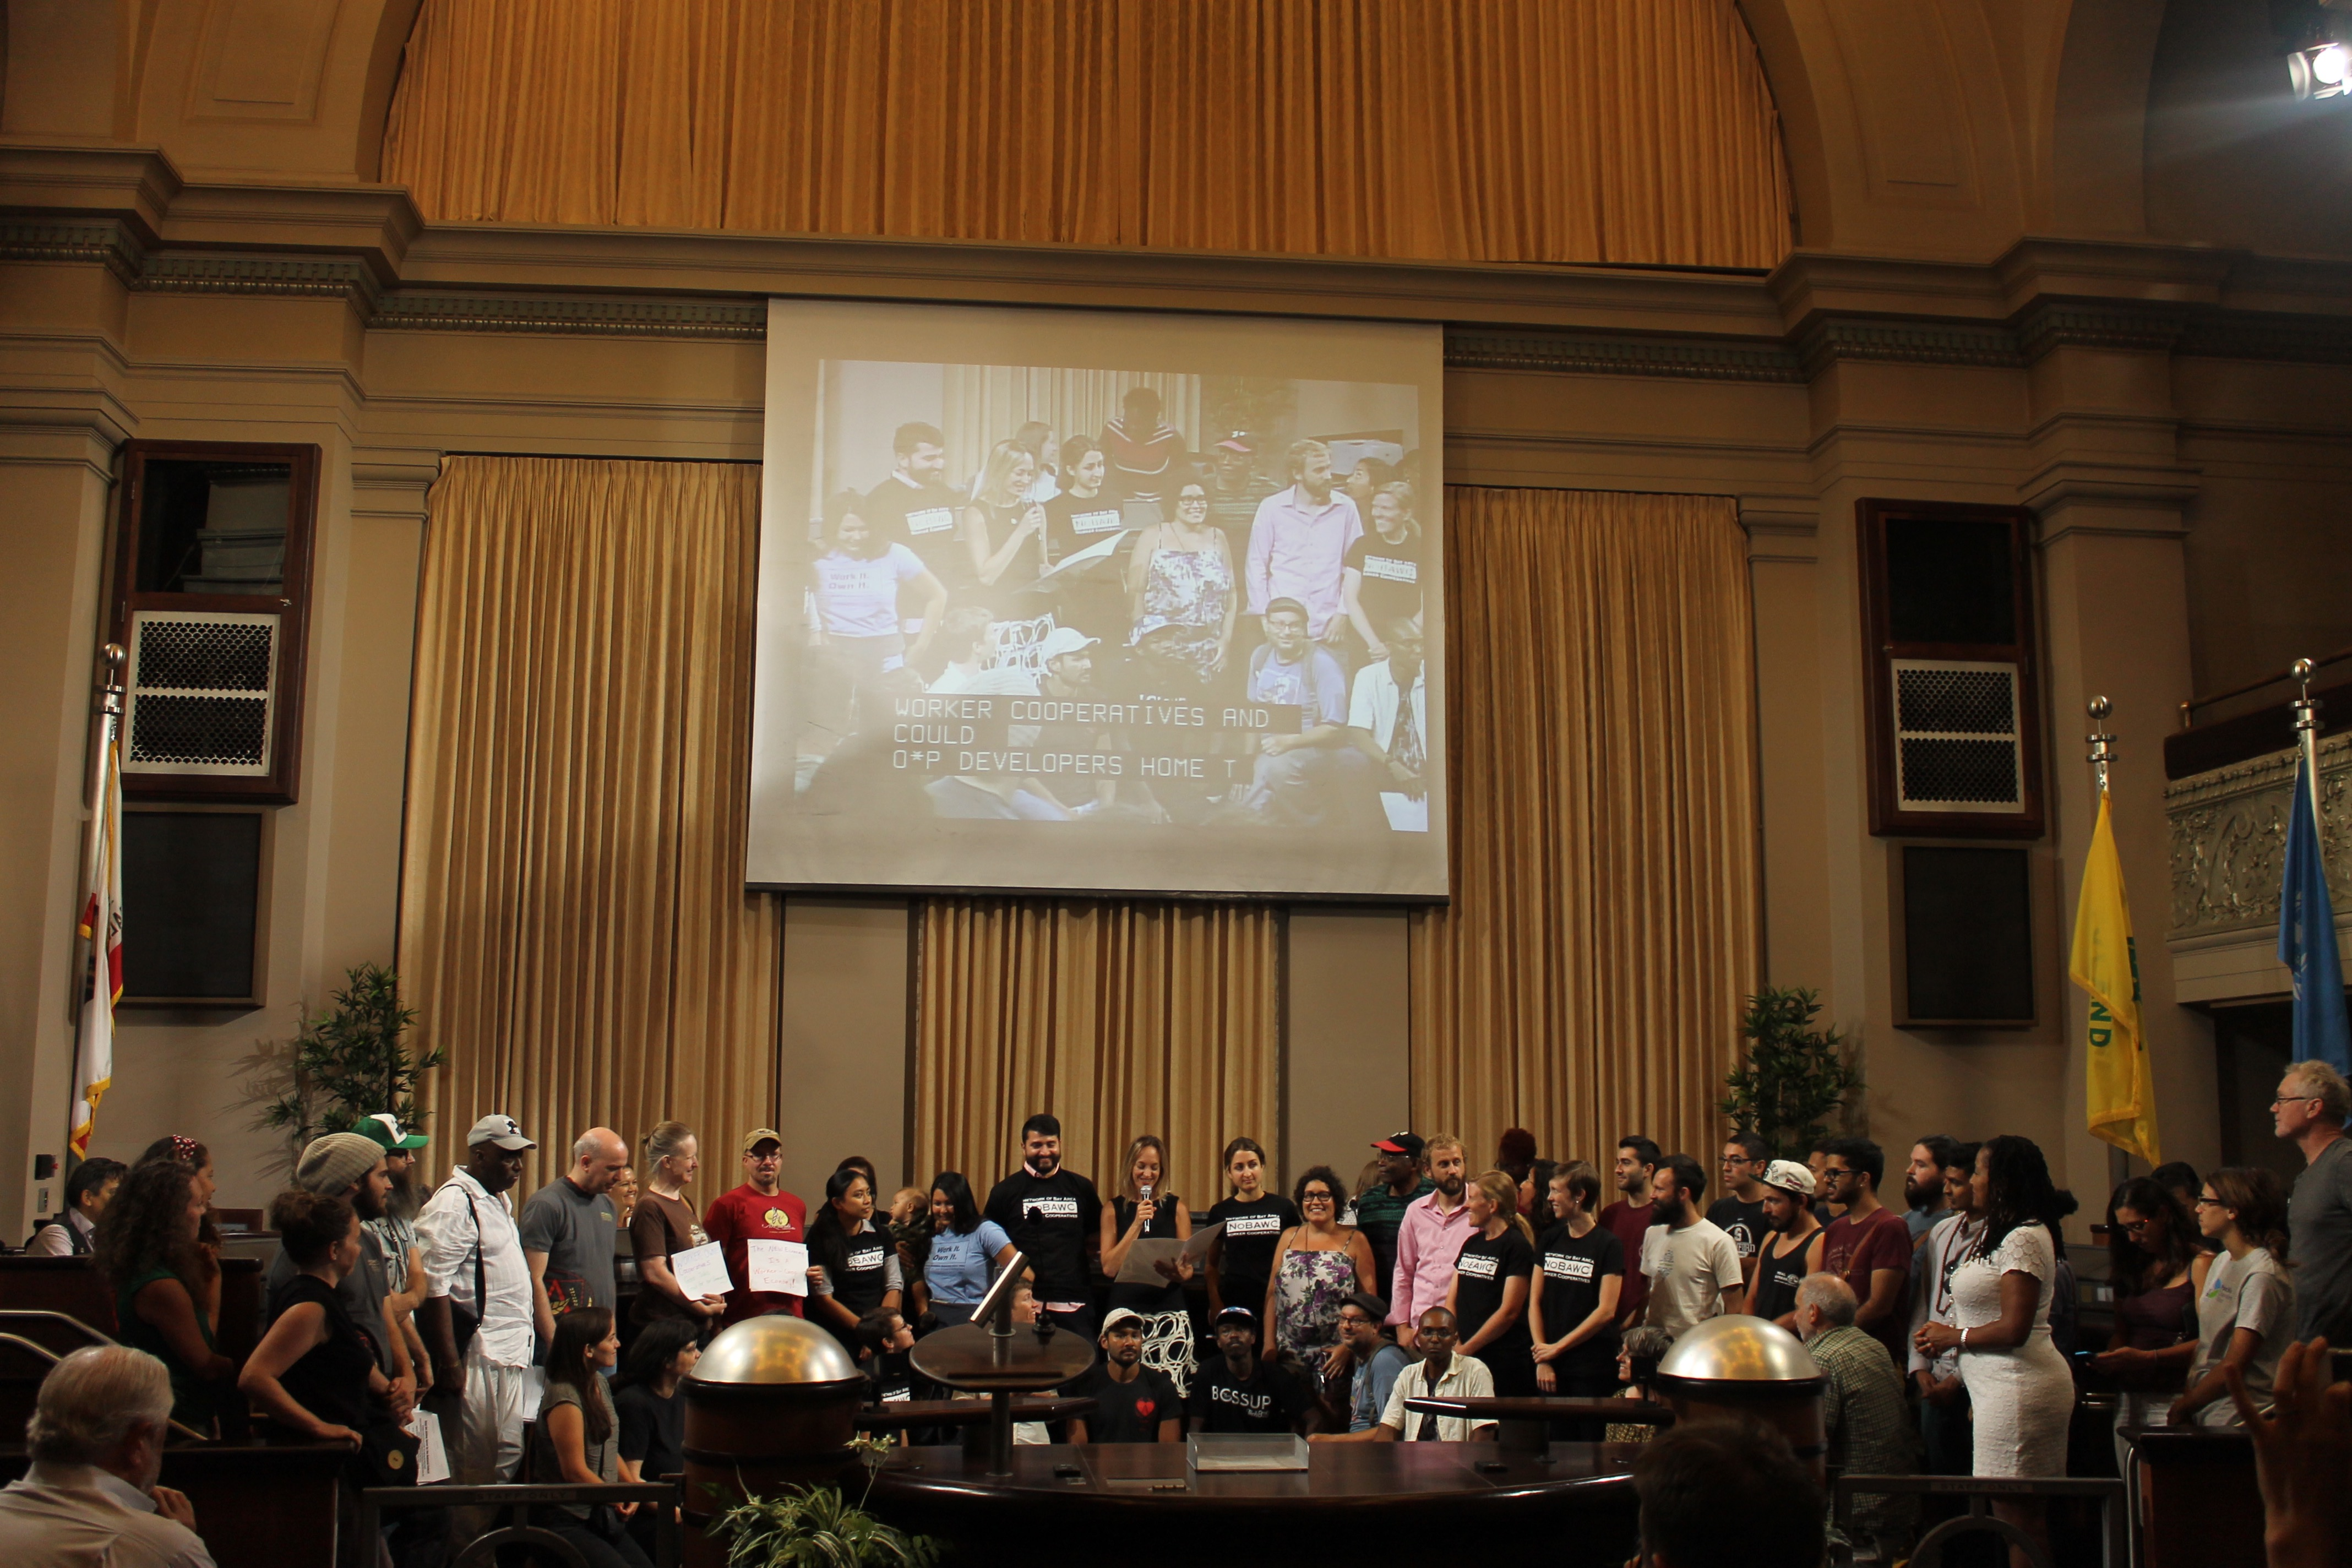 Oakland Passes Resolution in Support of Worker Cooperatives